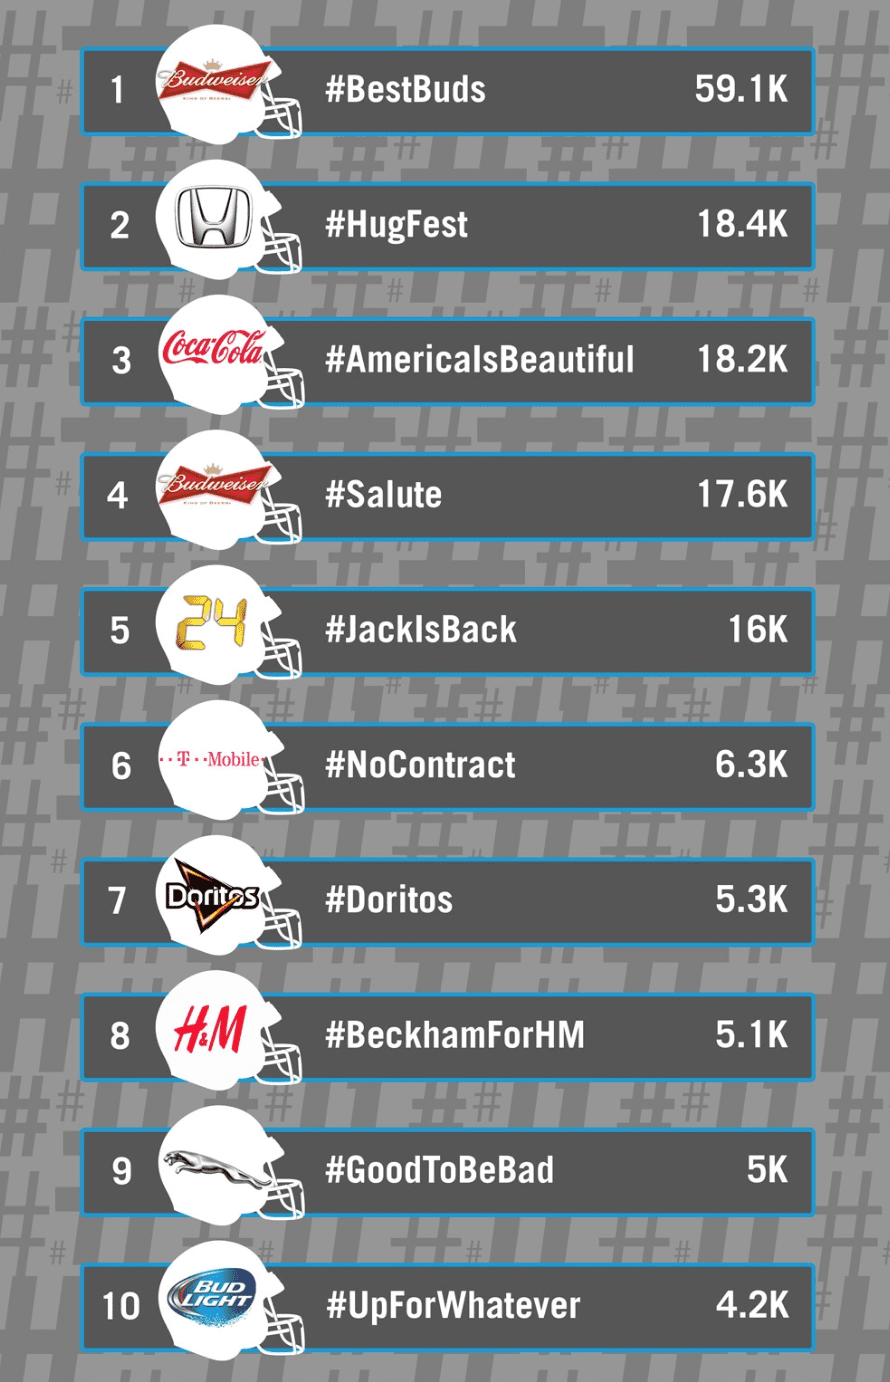 Number of Hashtag mentions during the 2014 Super Bowl, as measured across Twitter using Hashtracking™